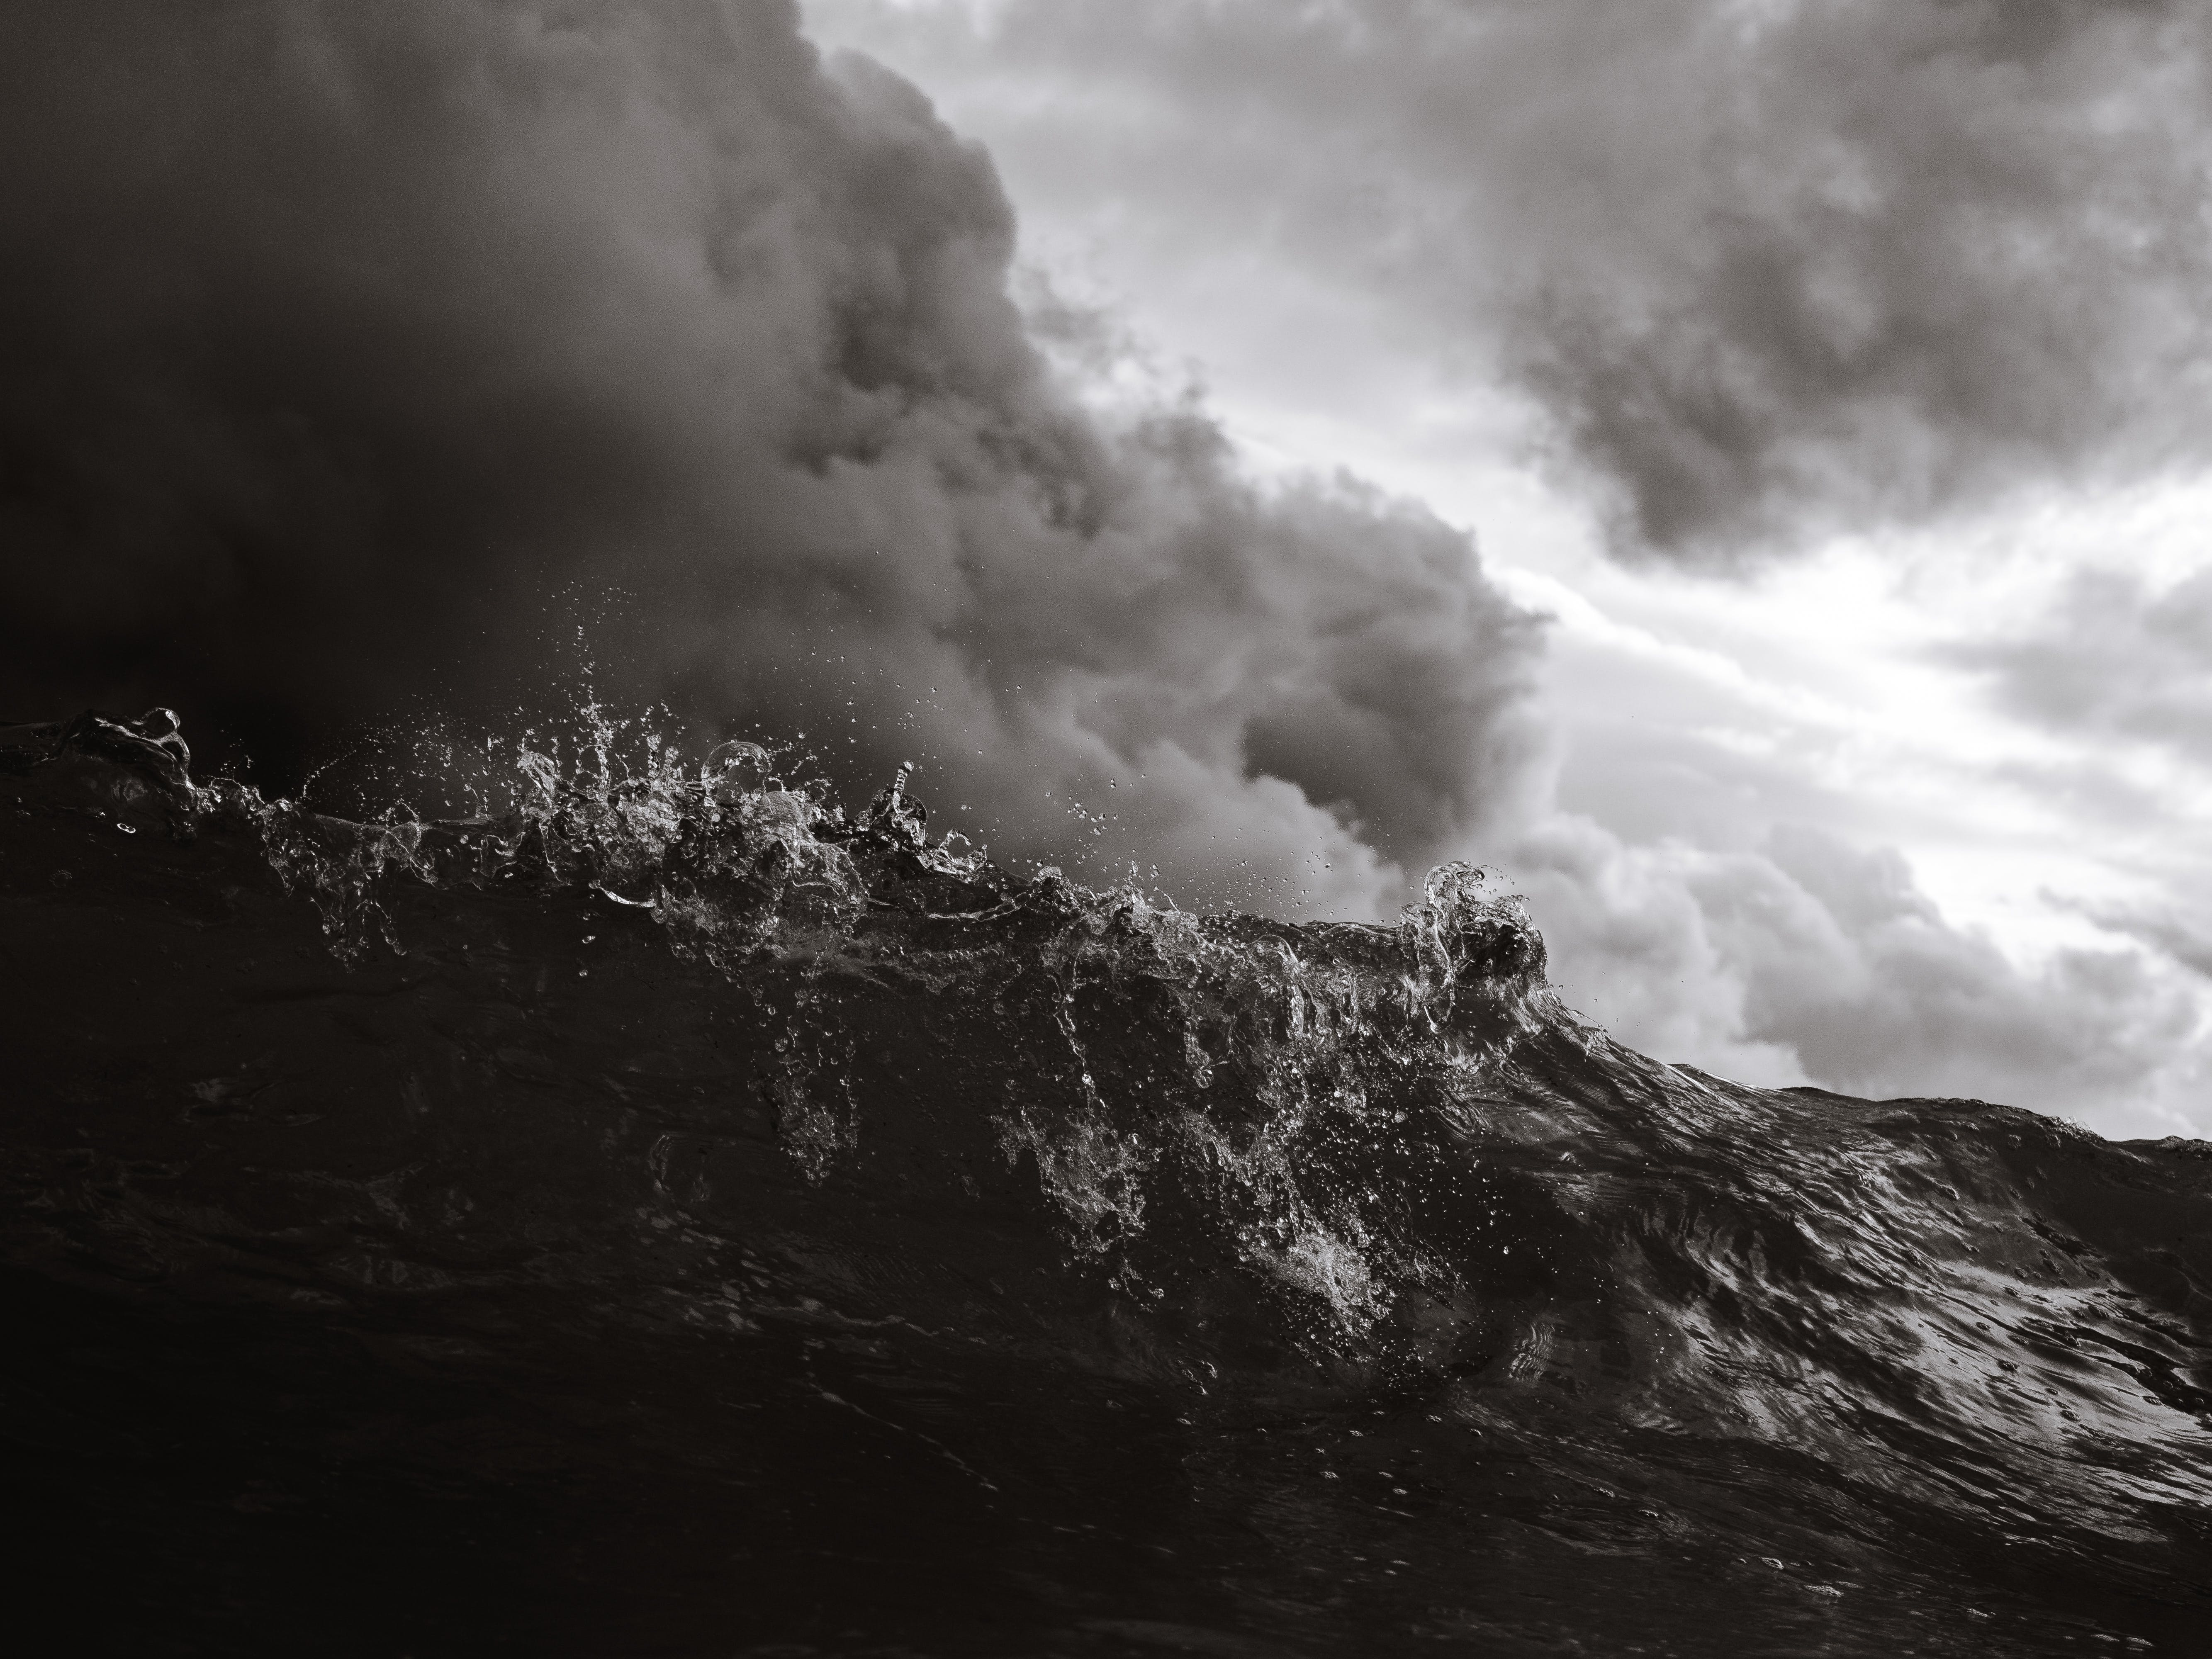 Monochrome Photo Of Waves